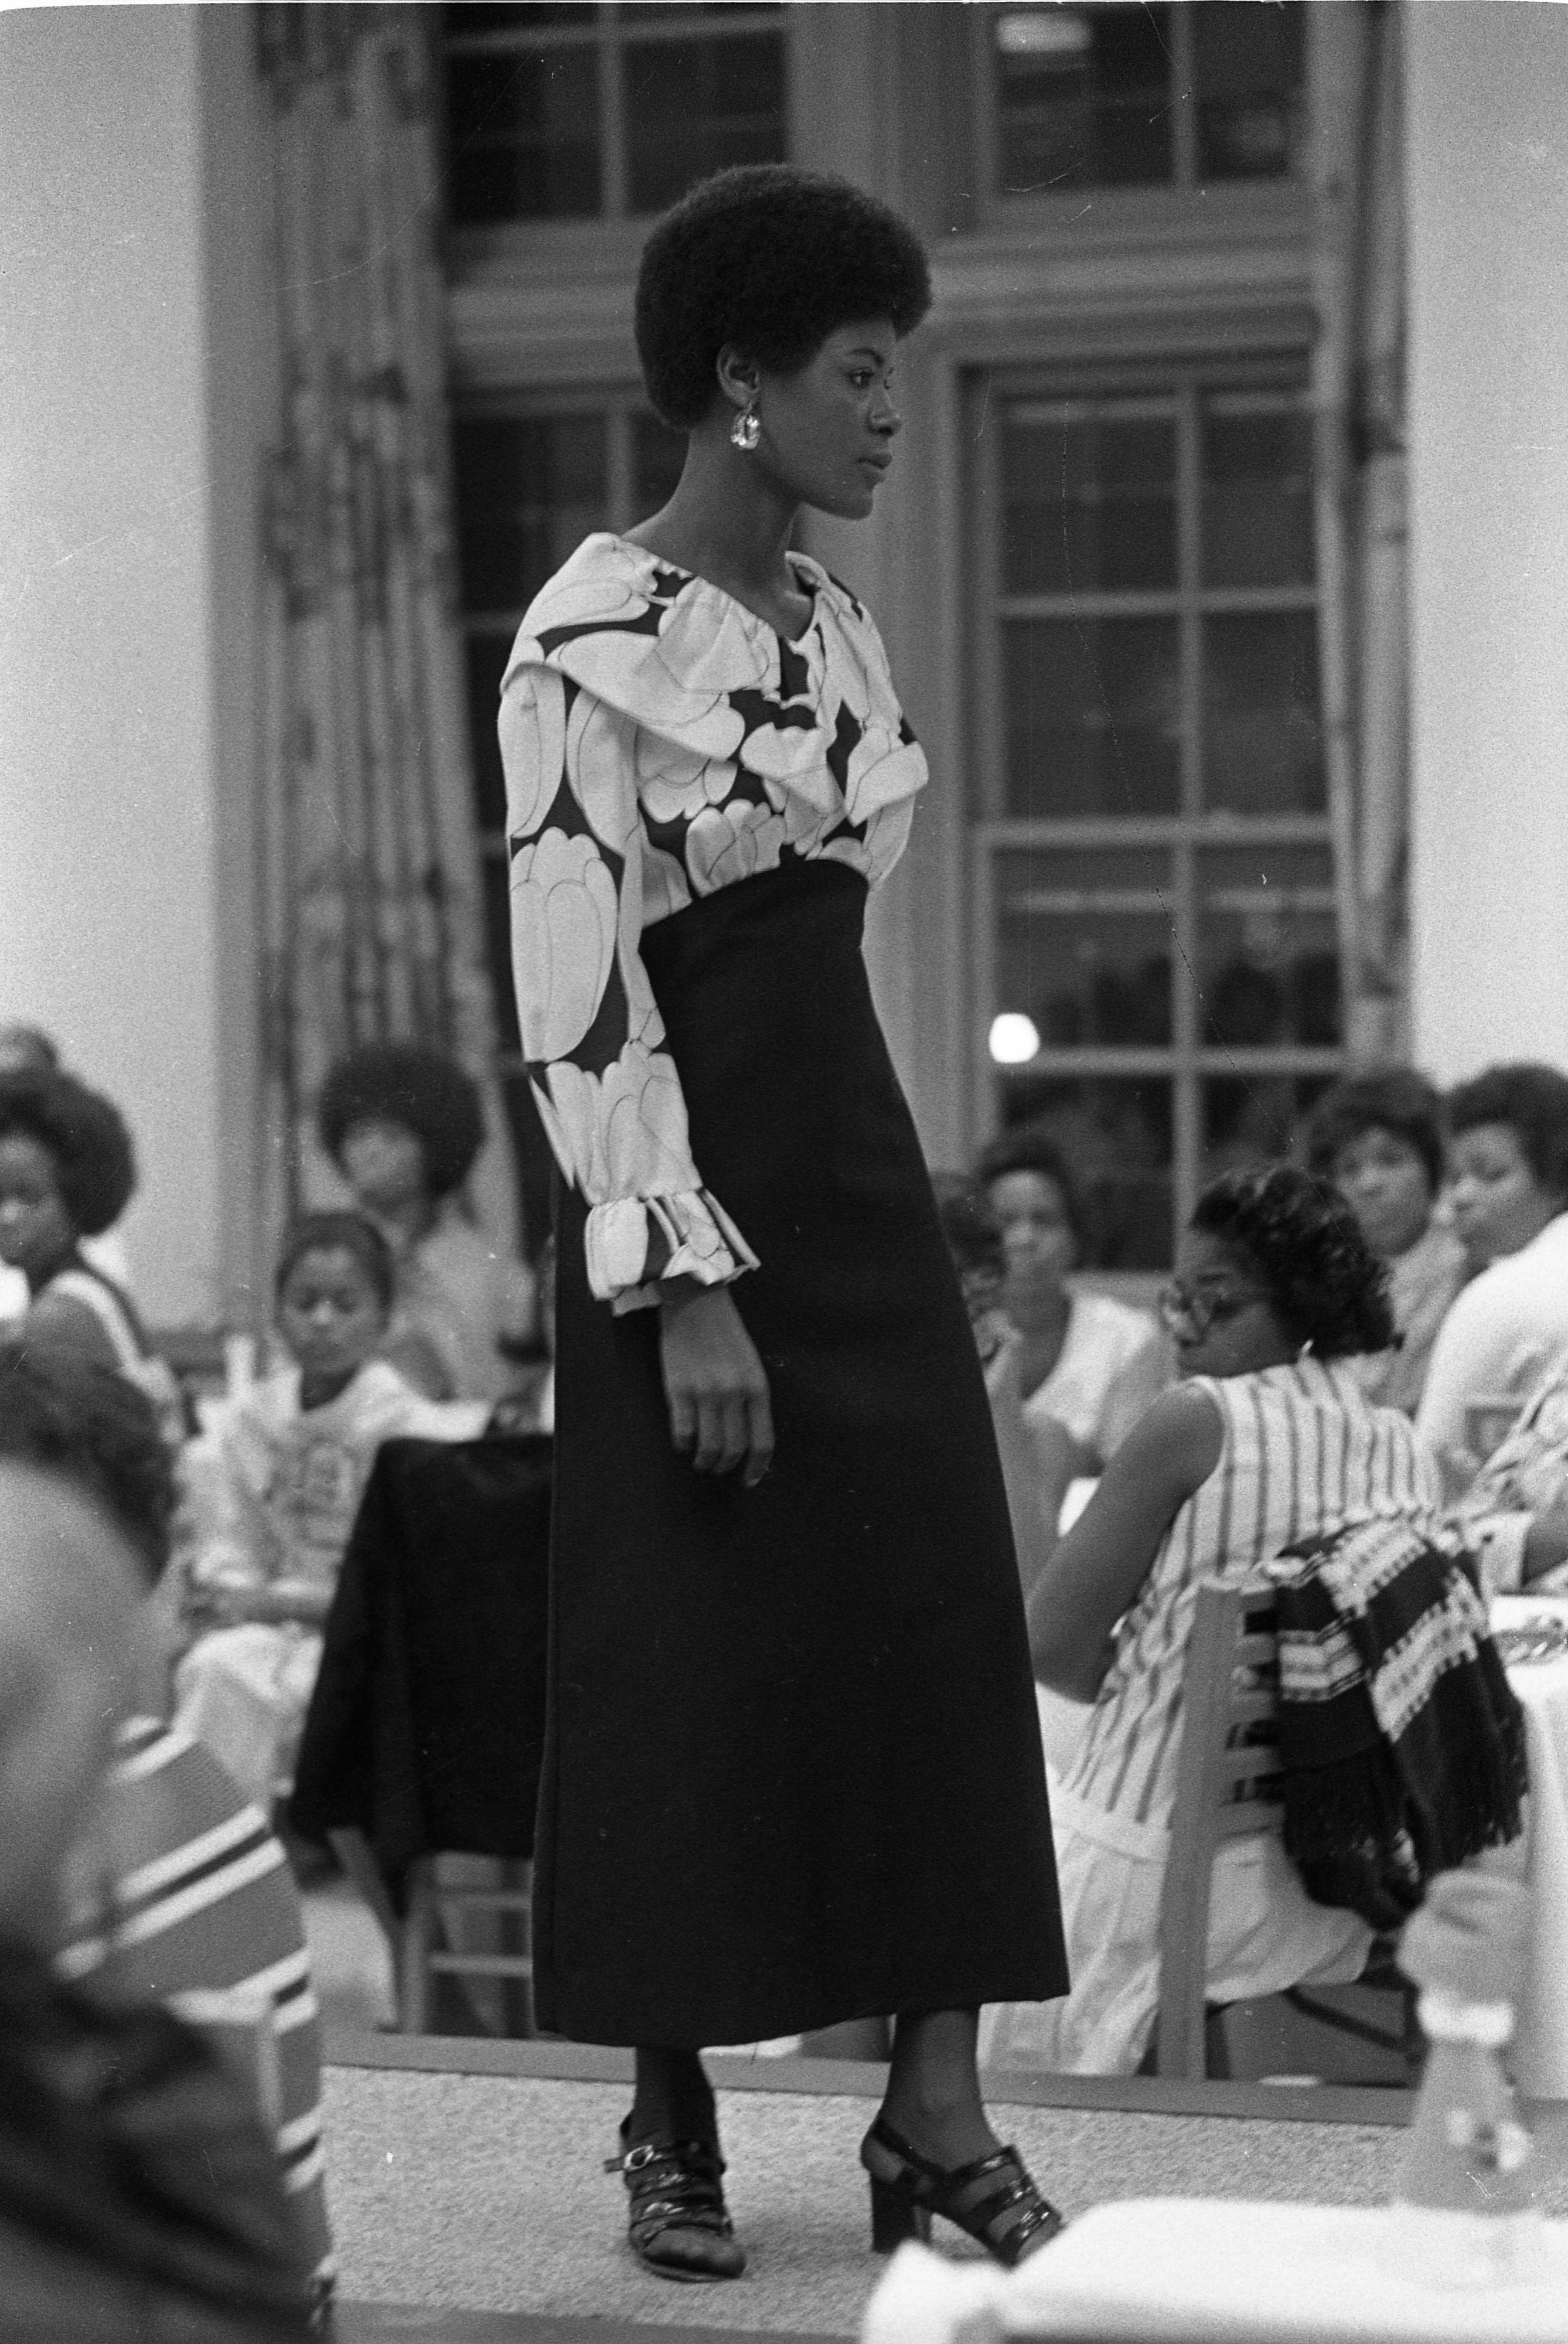 Shirley Walker Walks The Runway For Local Fashion Show, August 1971 image